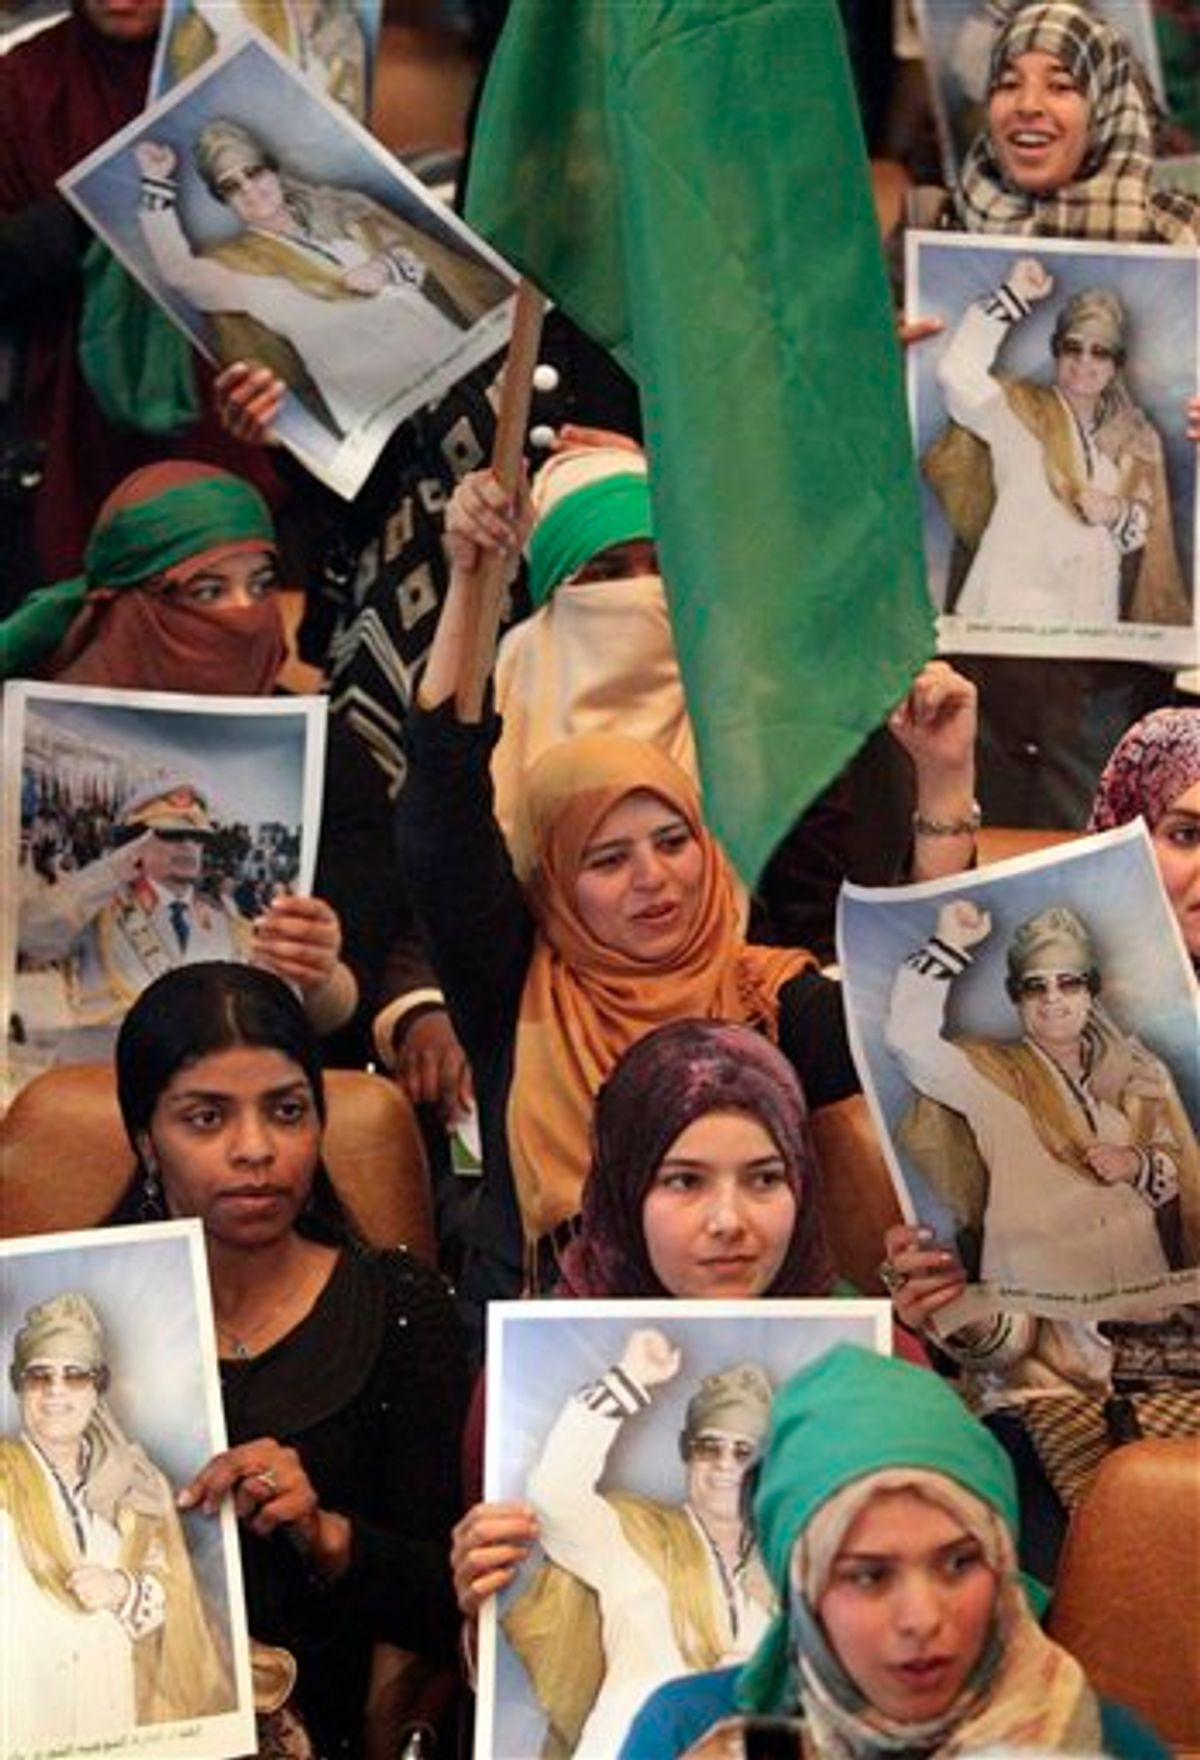 In this image taken during a trip organized by Libyan authorities, students hold portraits of Libyan leader Moammar Gadhafi during a meeting at  the Al Fateh University in Tripoli, Libya, celebrating Student Day,  Thursday, April 7, 2011. (AP Photo/Pier Paolo Cito) (AP)